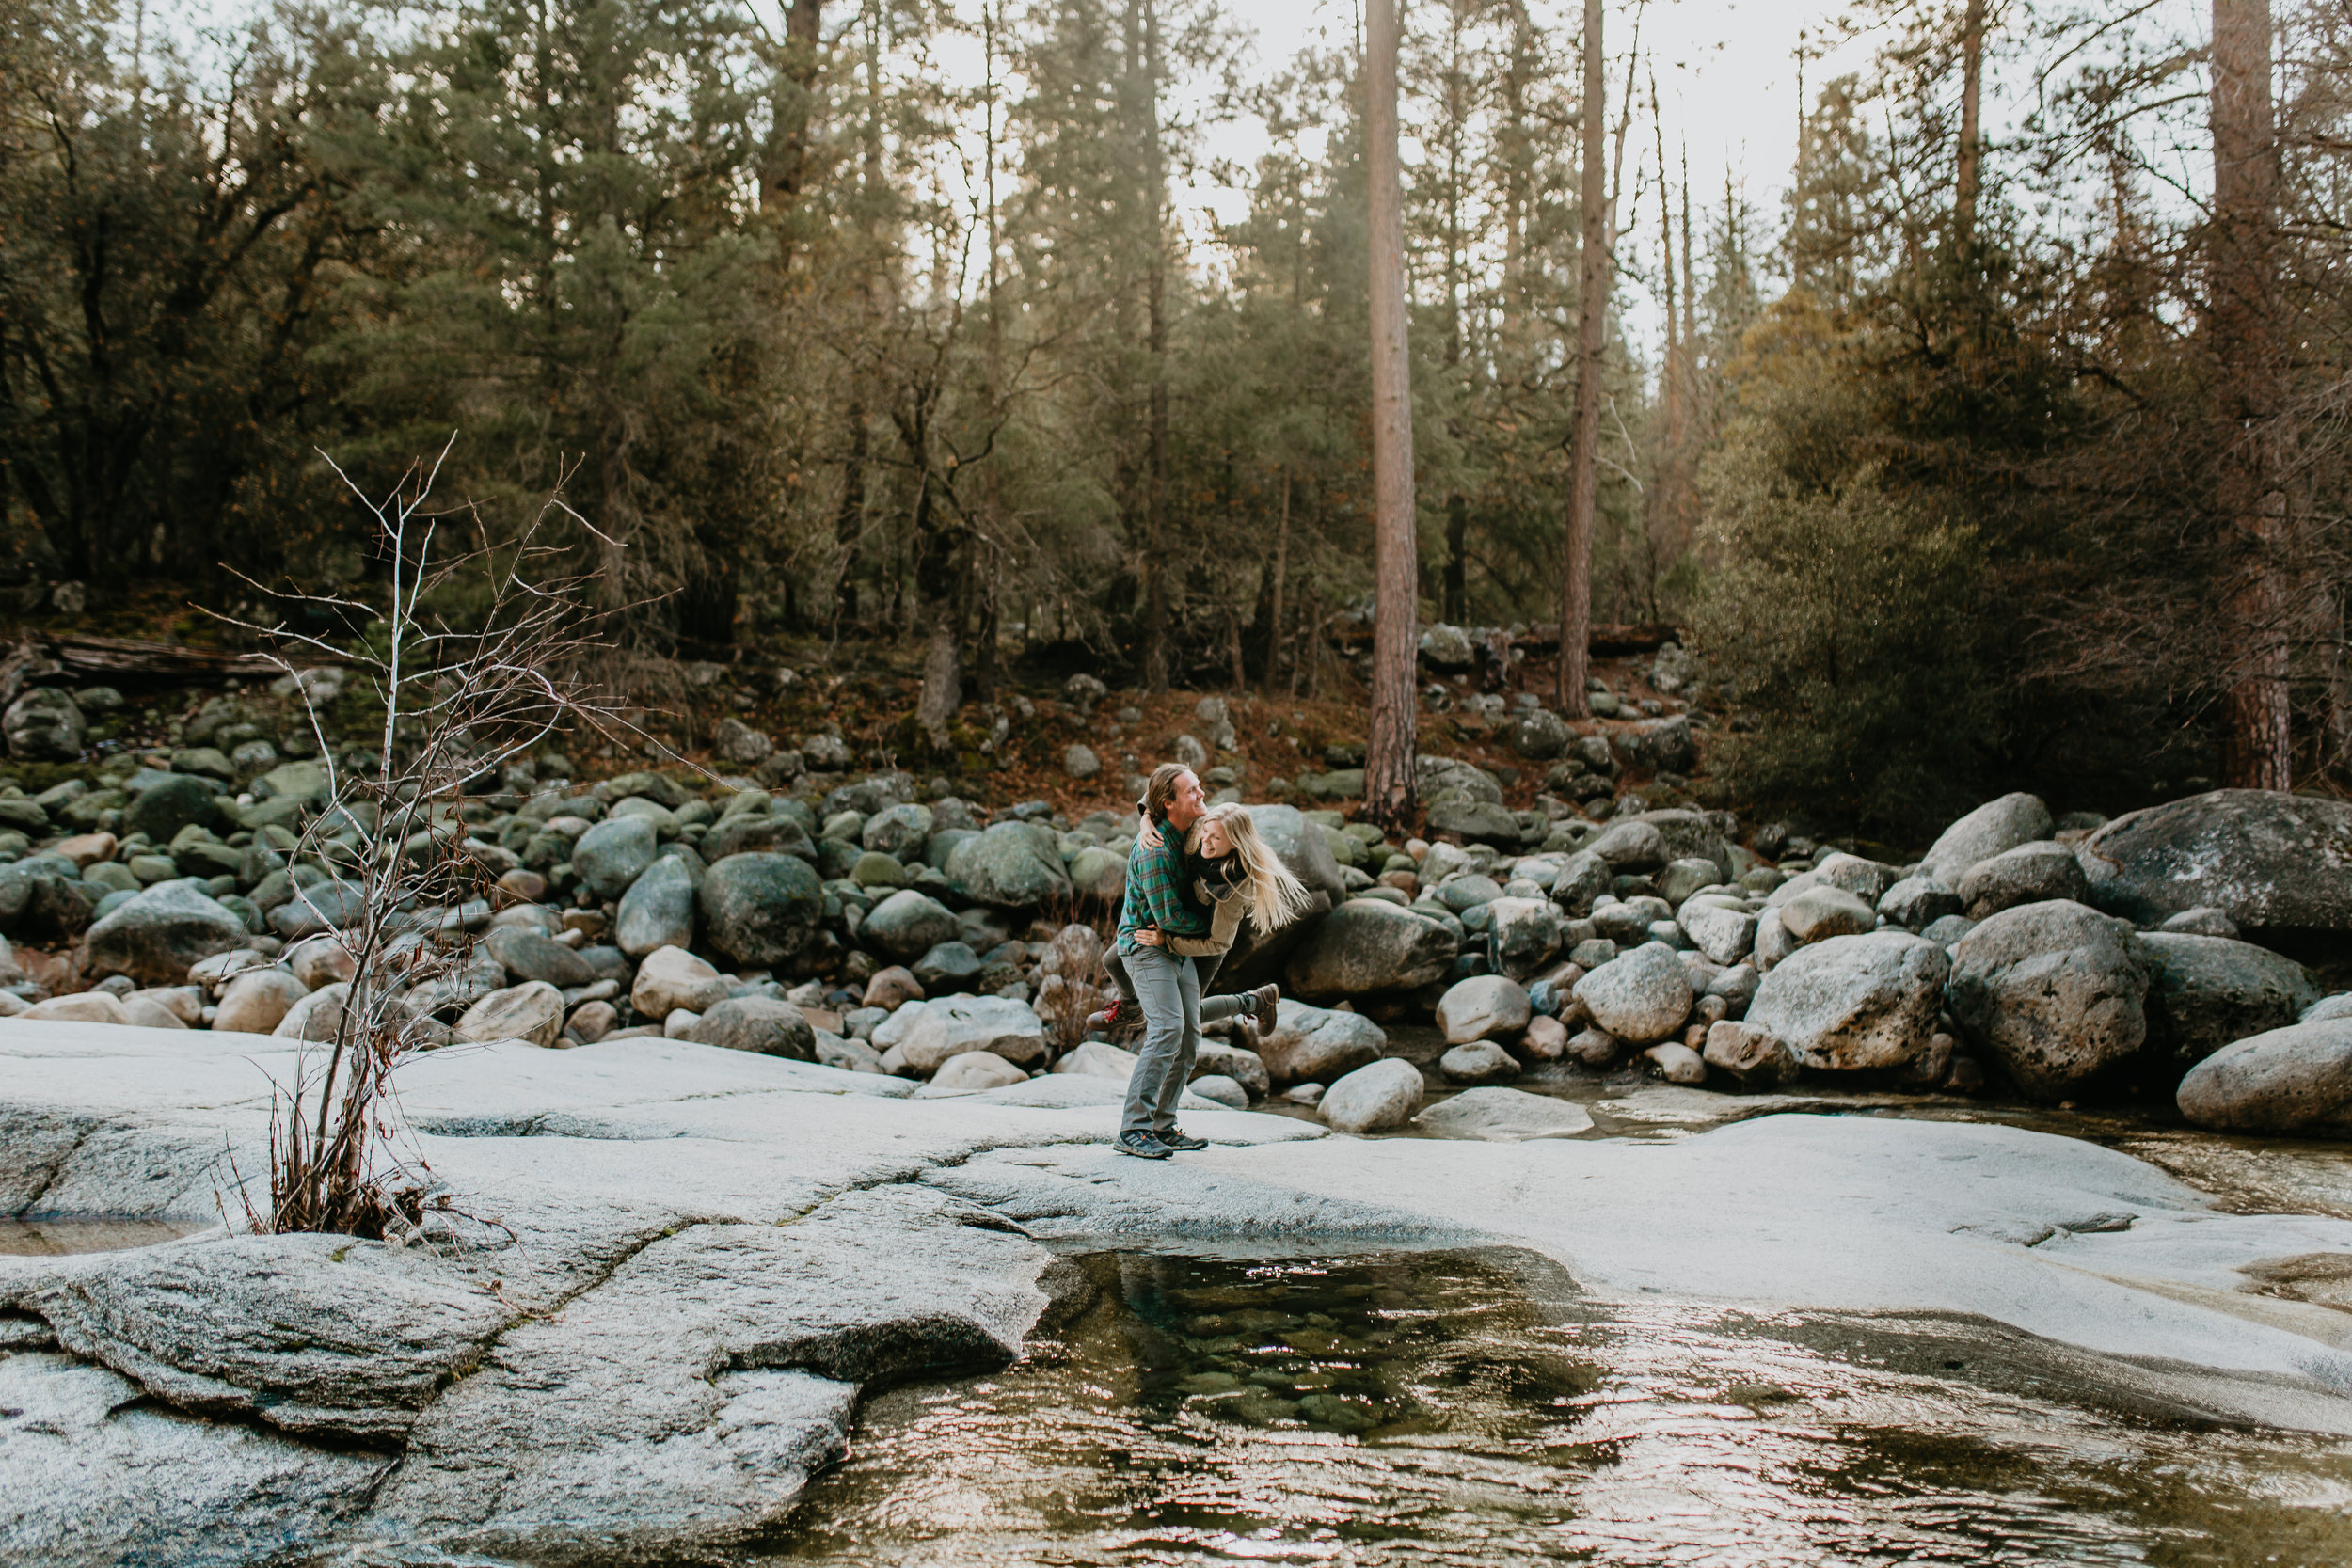 nicole-daacke-photography-yosemite-riverside-adventurous-engagement-photos-in-yosemite-national-park-elopement-photographer-weddings-travel-destination-wedding-eloping-elope-pine-forest-7.jpg